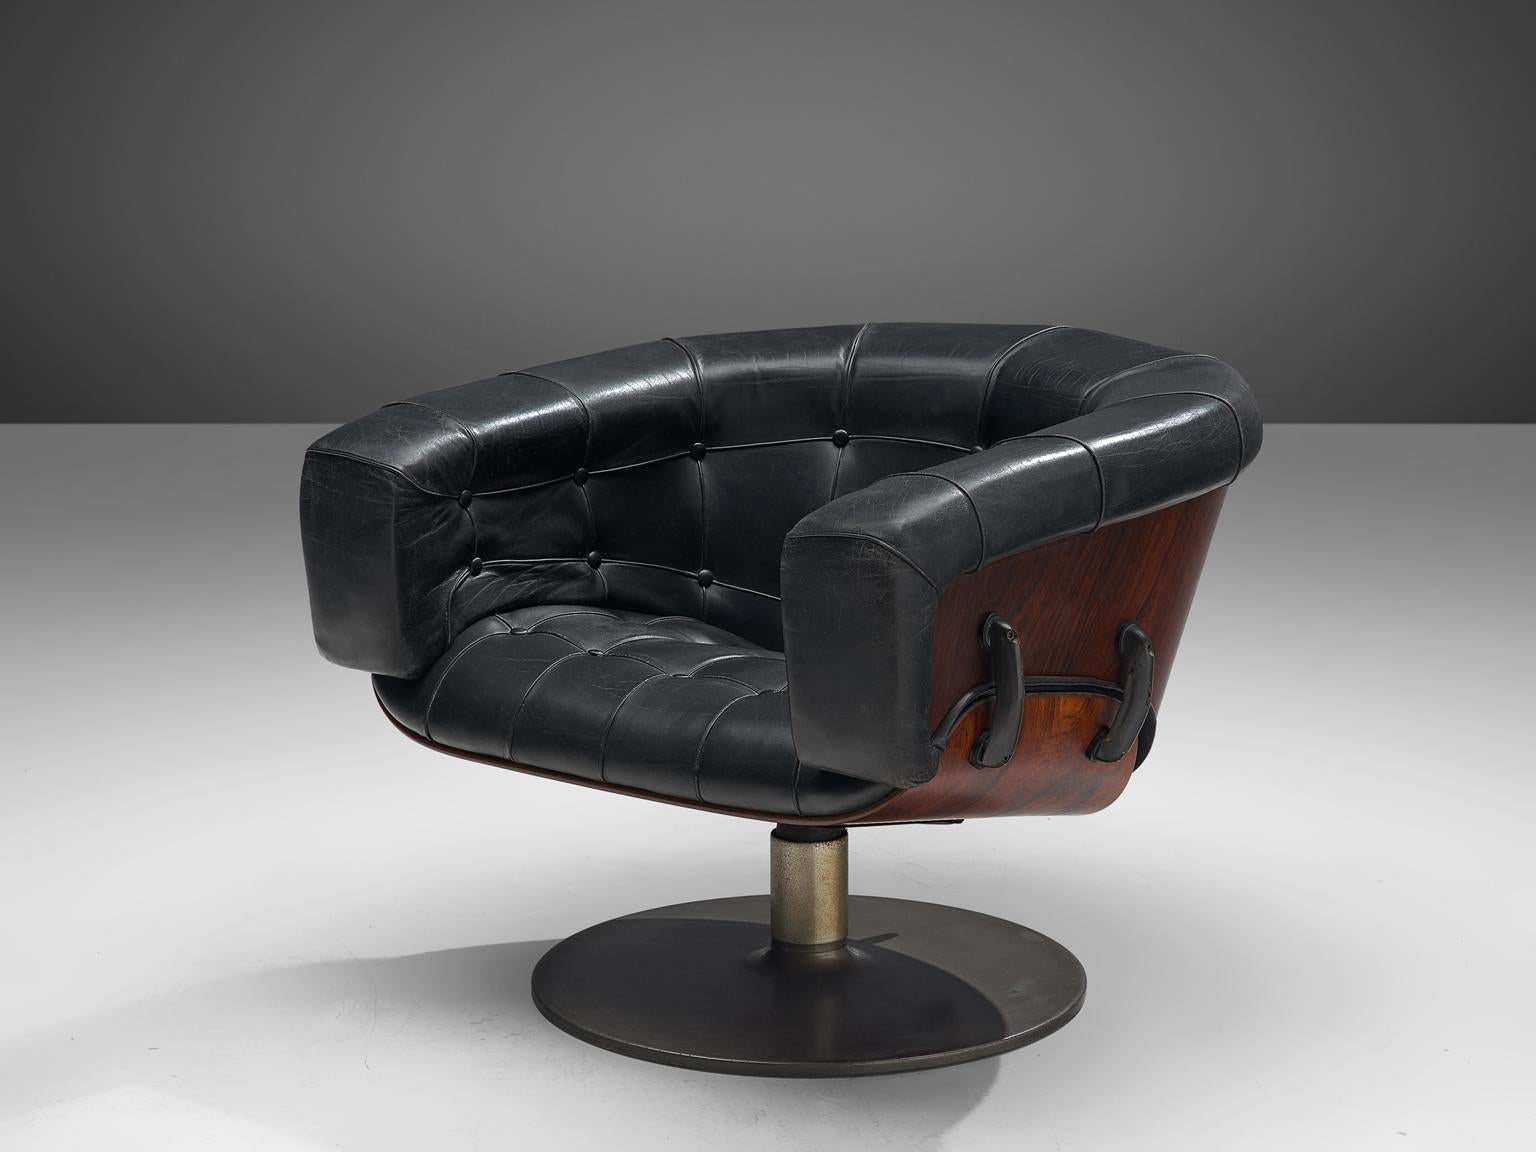 Martin Grierson 'London' Chair in Leather and Rosewood